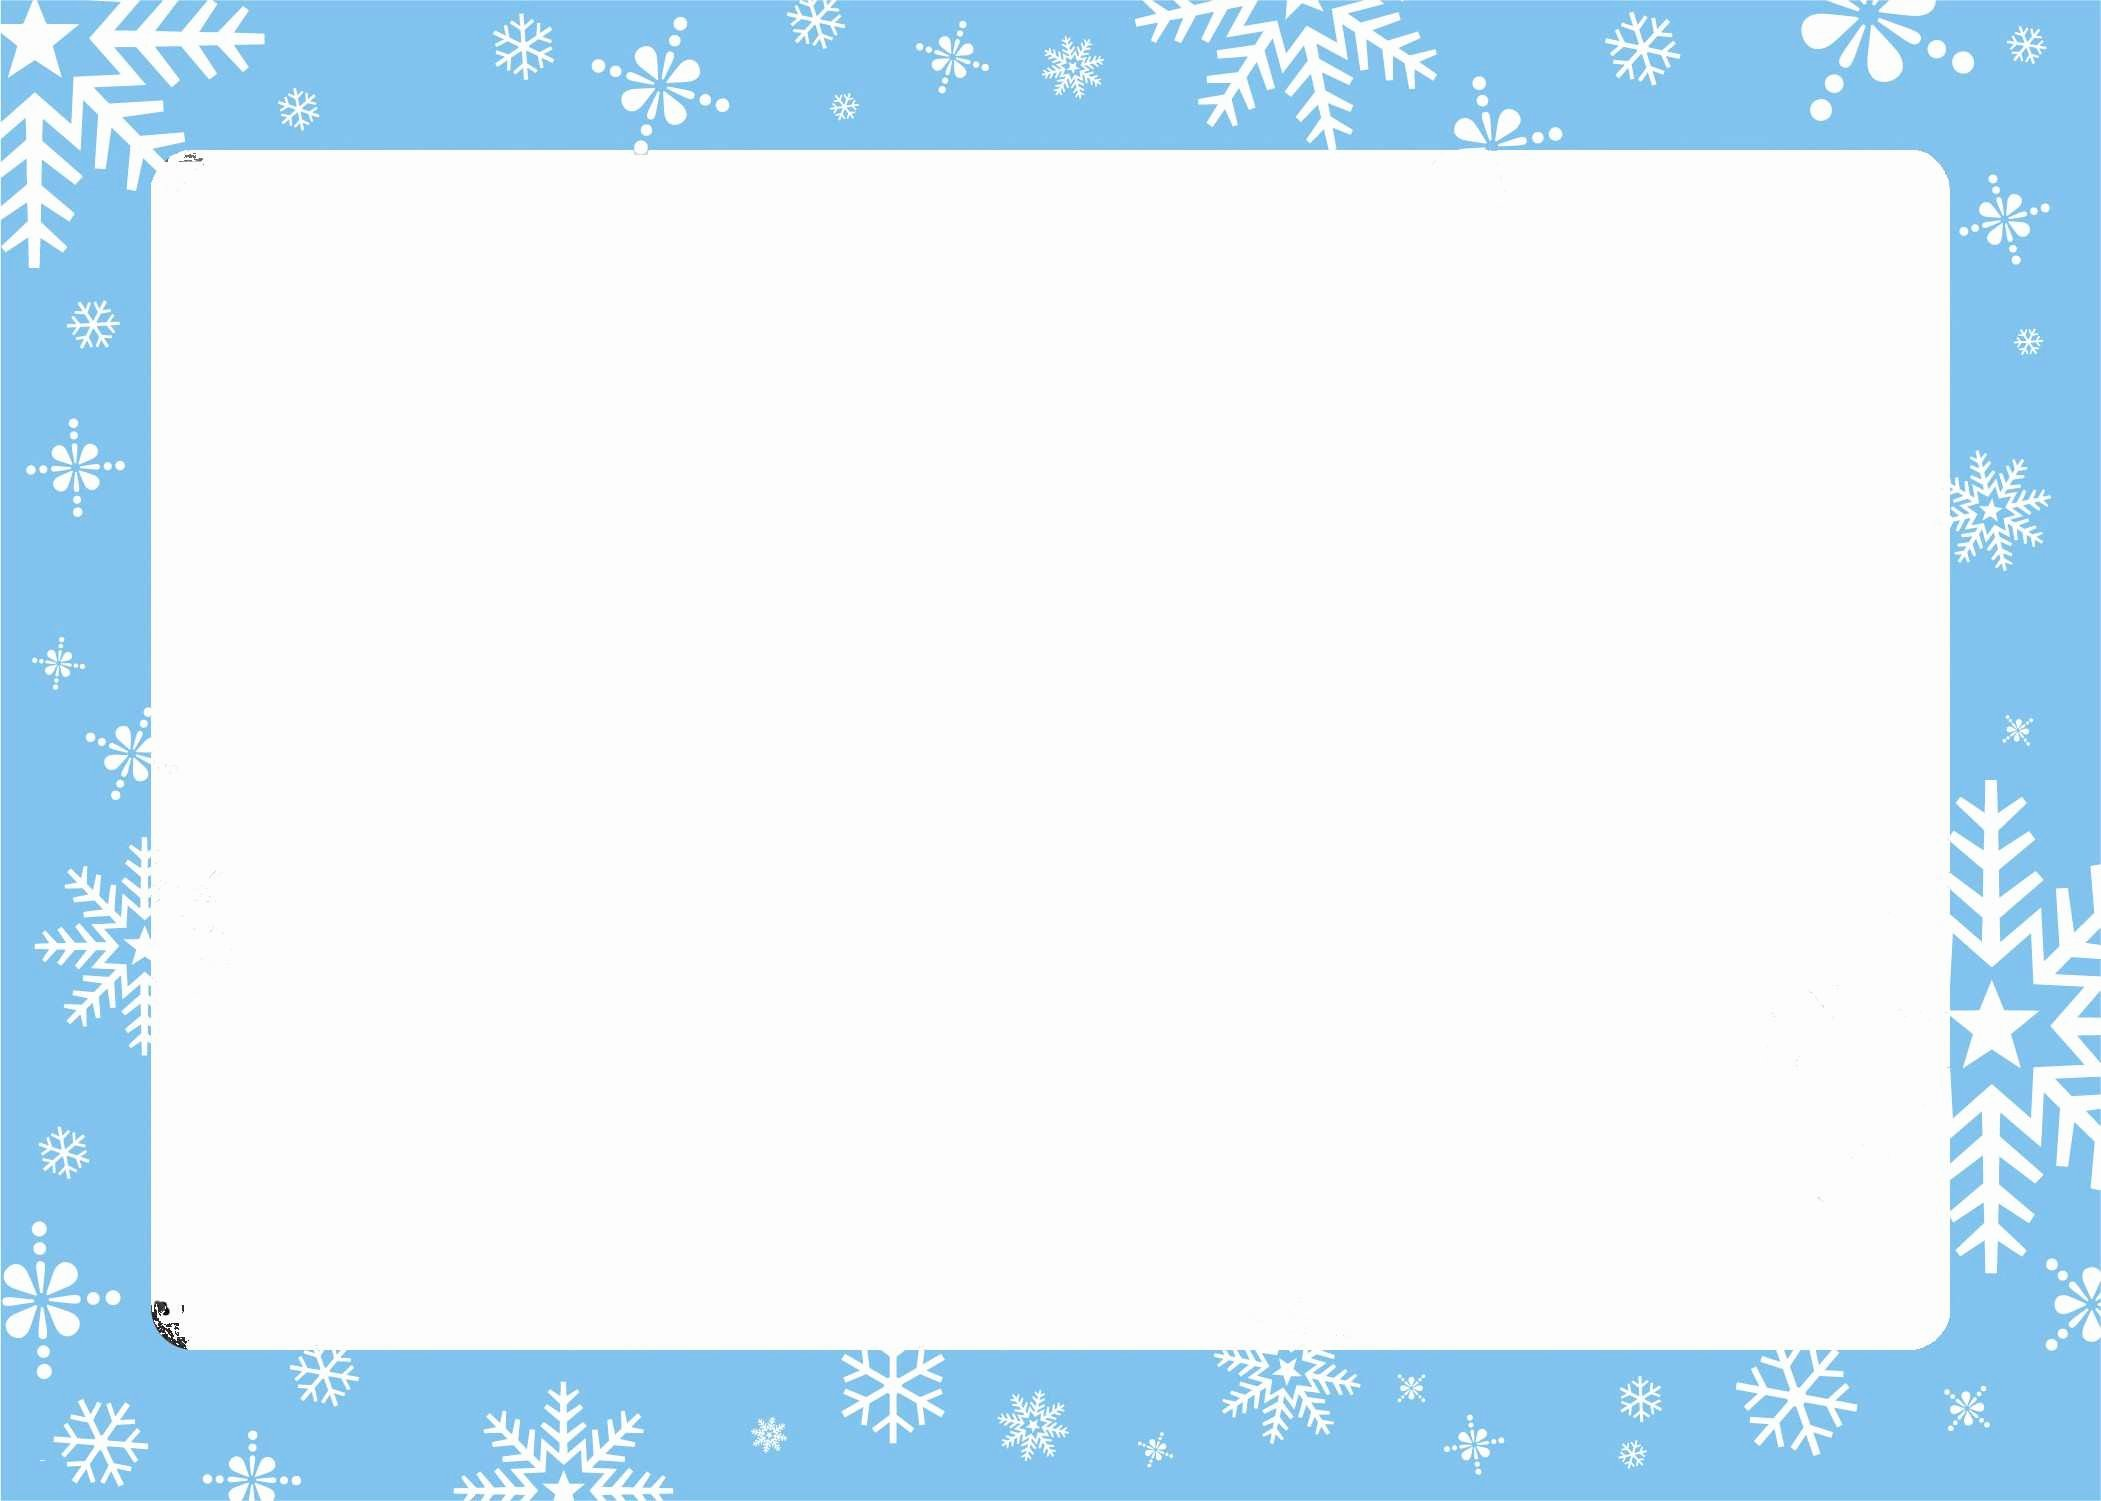 Greeting Card Template Photoshop Awesome Lovely Free 5x7 Christmas Card Templates for Shop